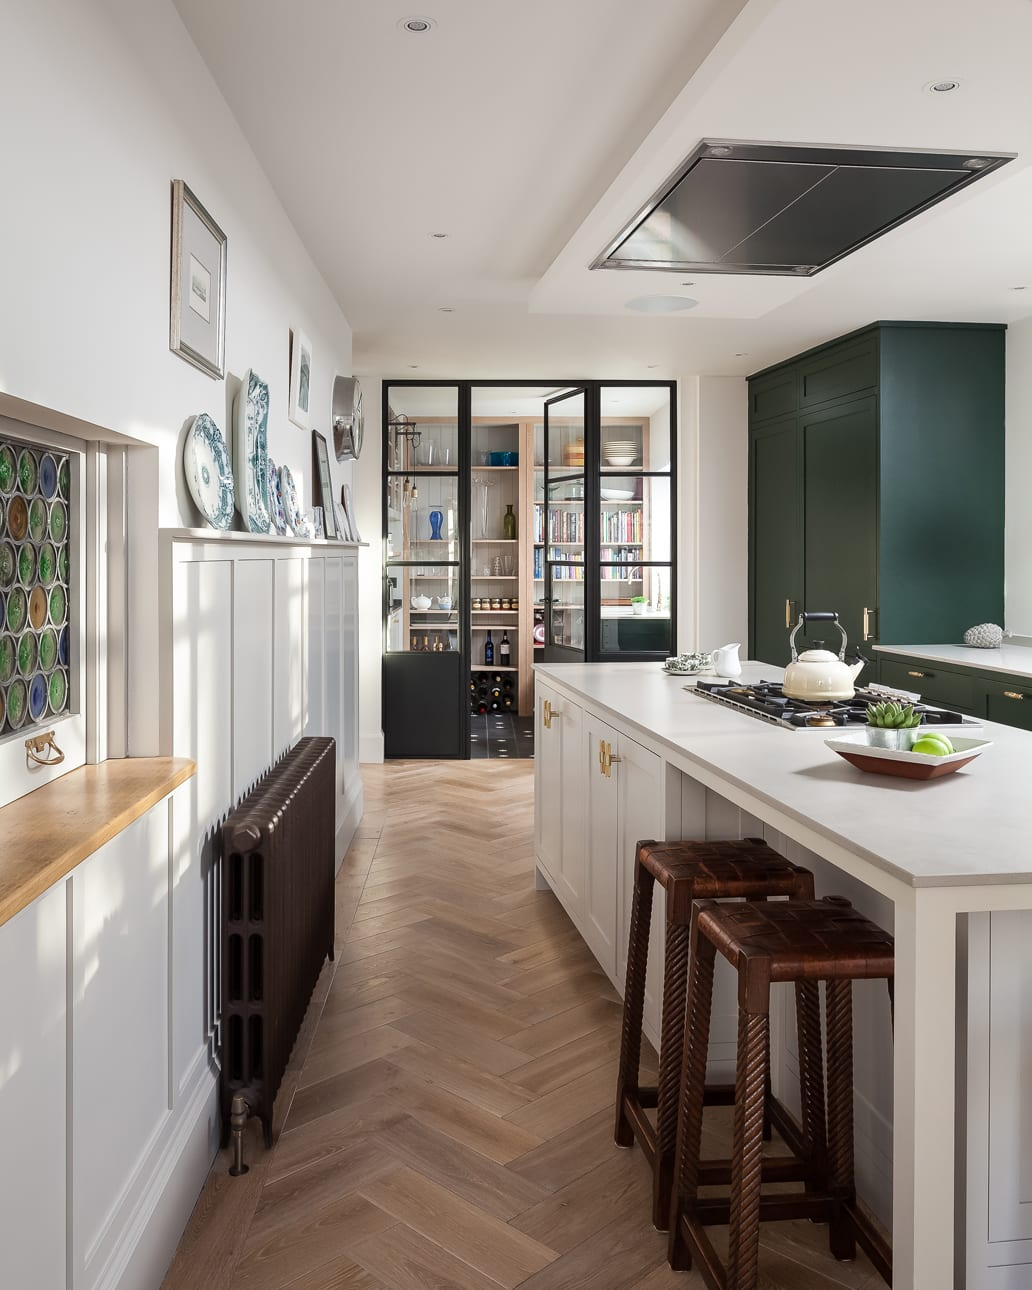 Farmhouse inspired Downs style kitchen extension concept